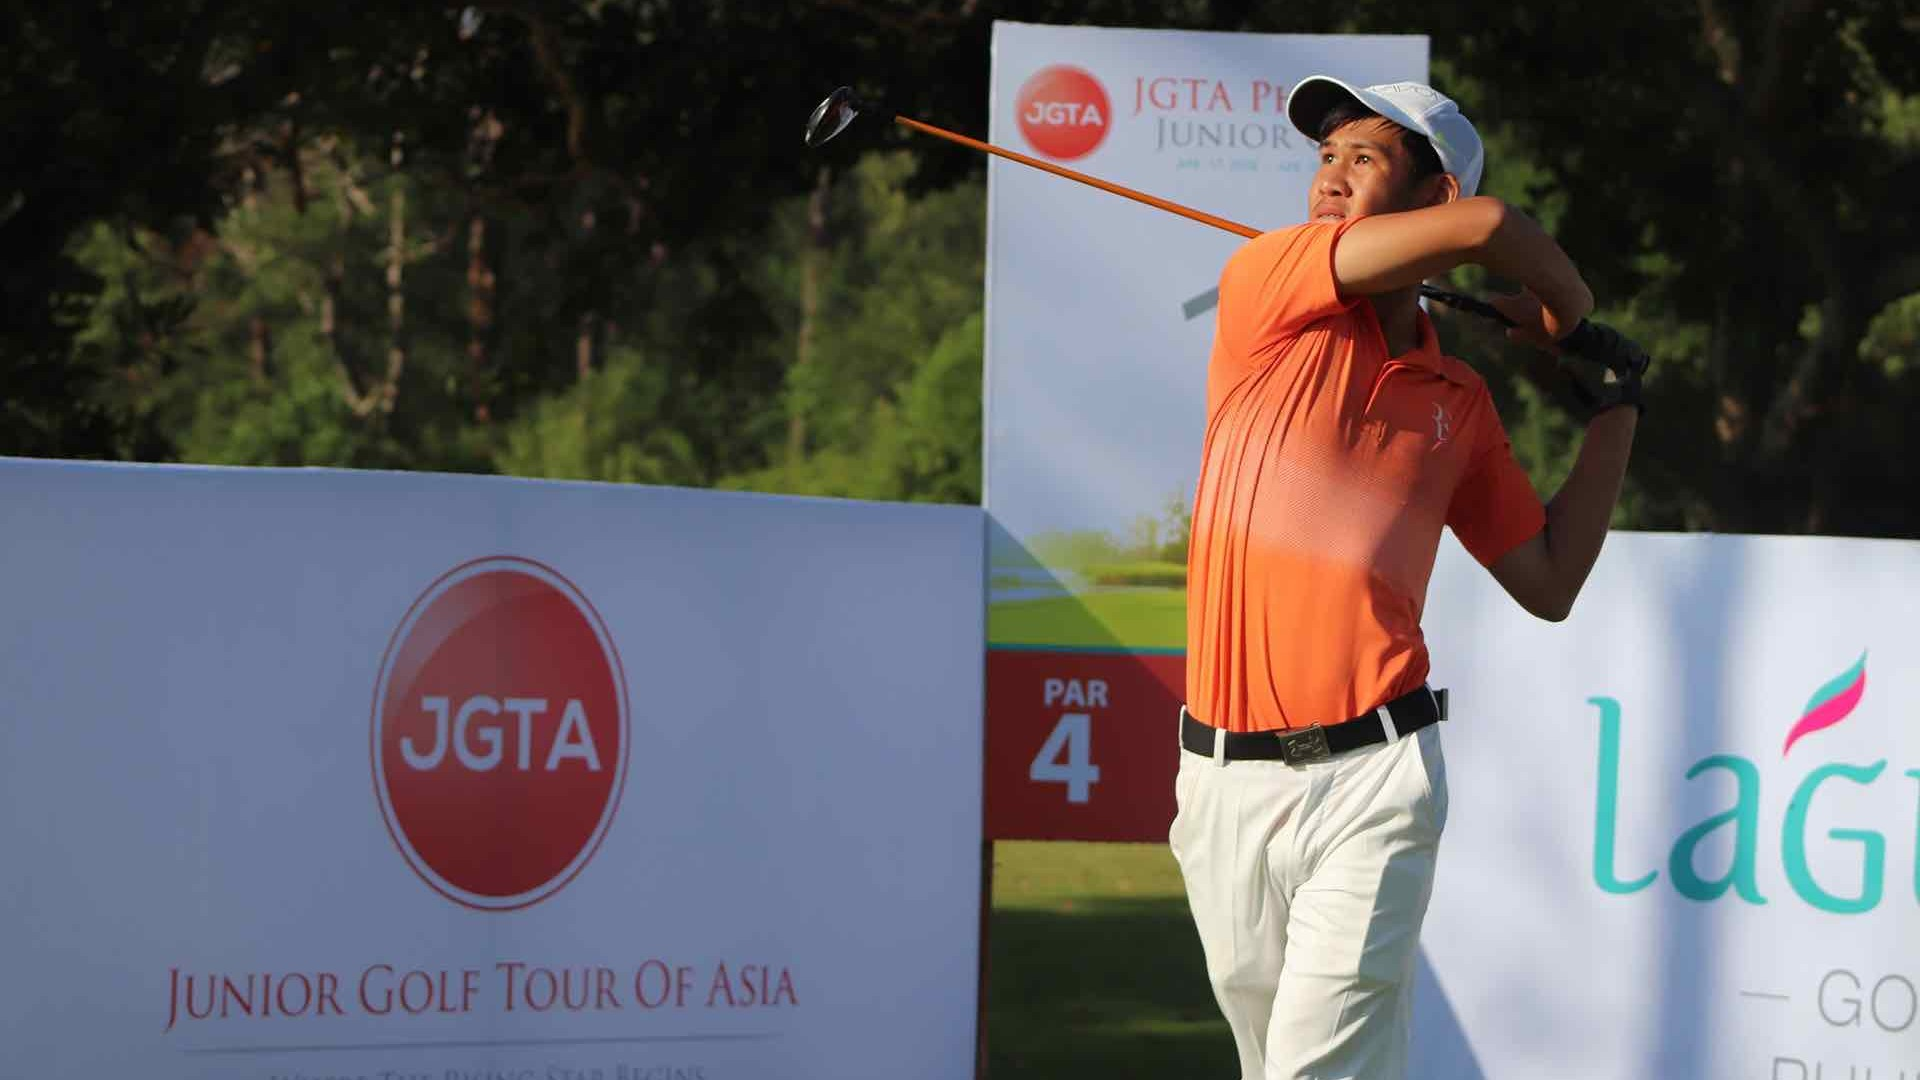 The Official Site Of The Jgta Junior Golf Tour Of Asia